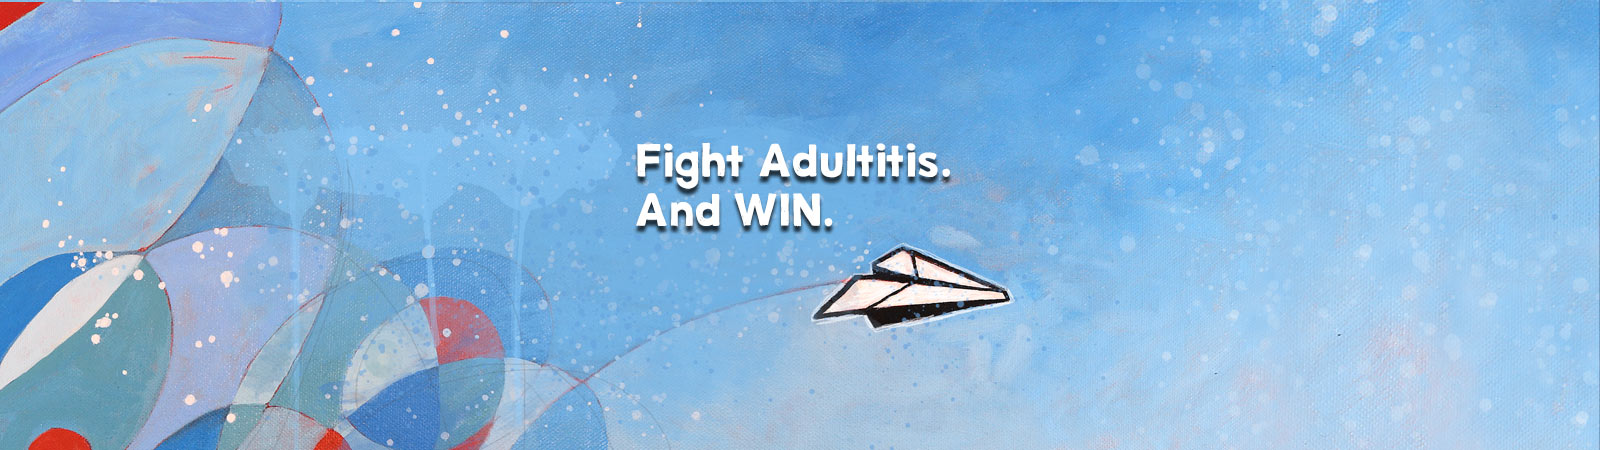 fight adultitis. and win.